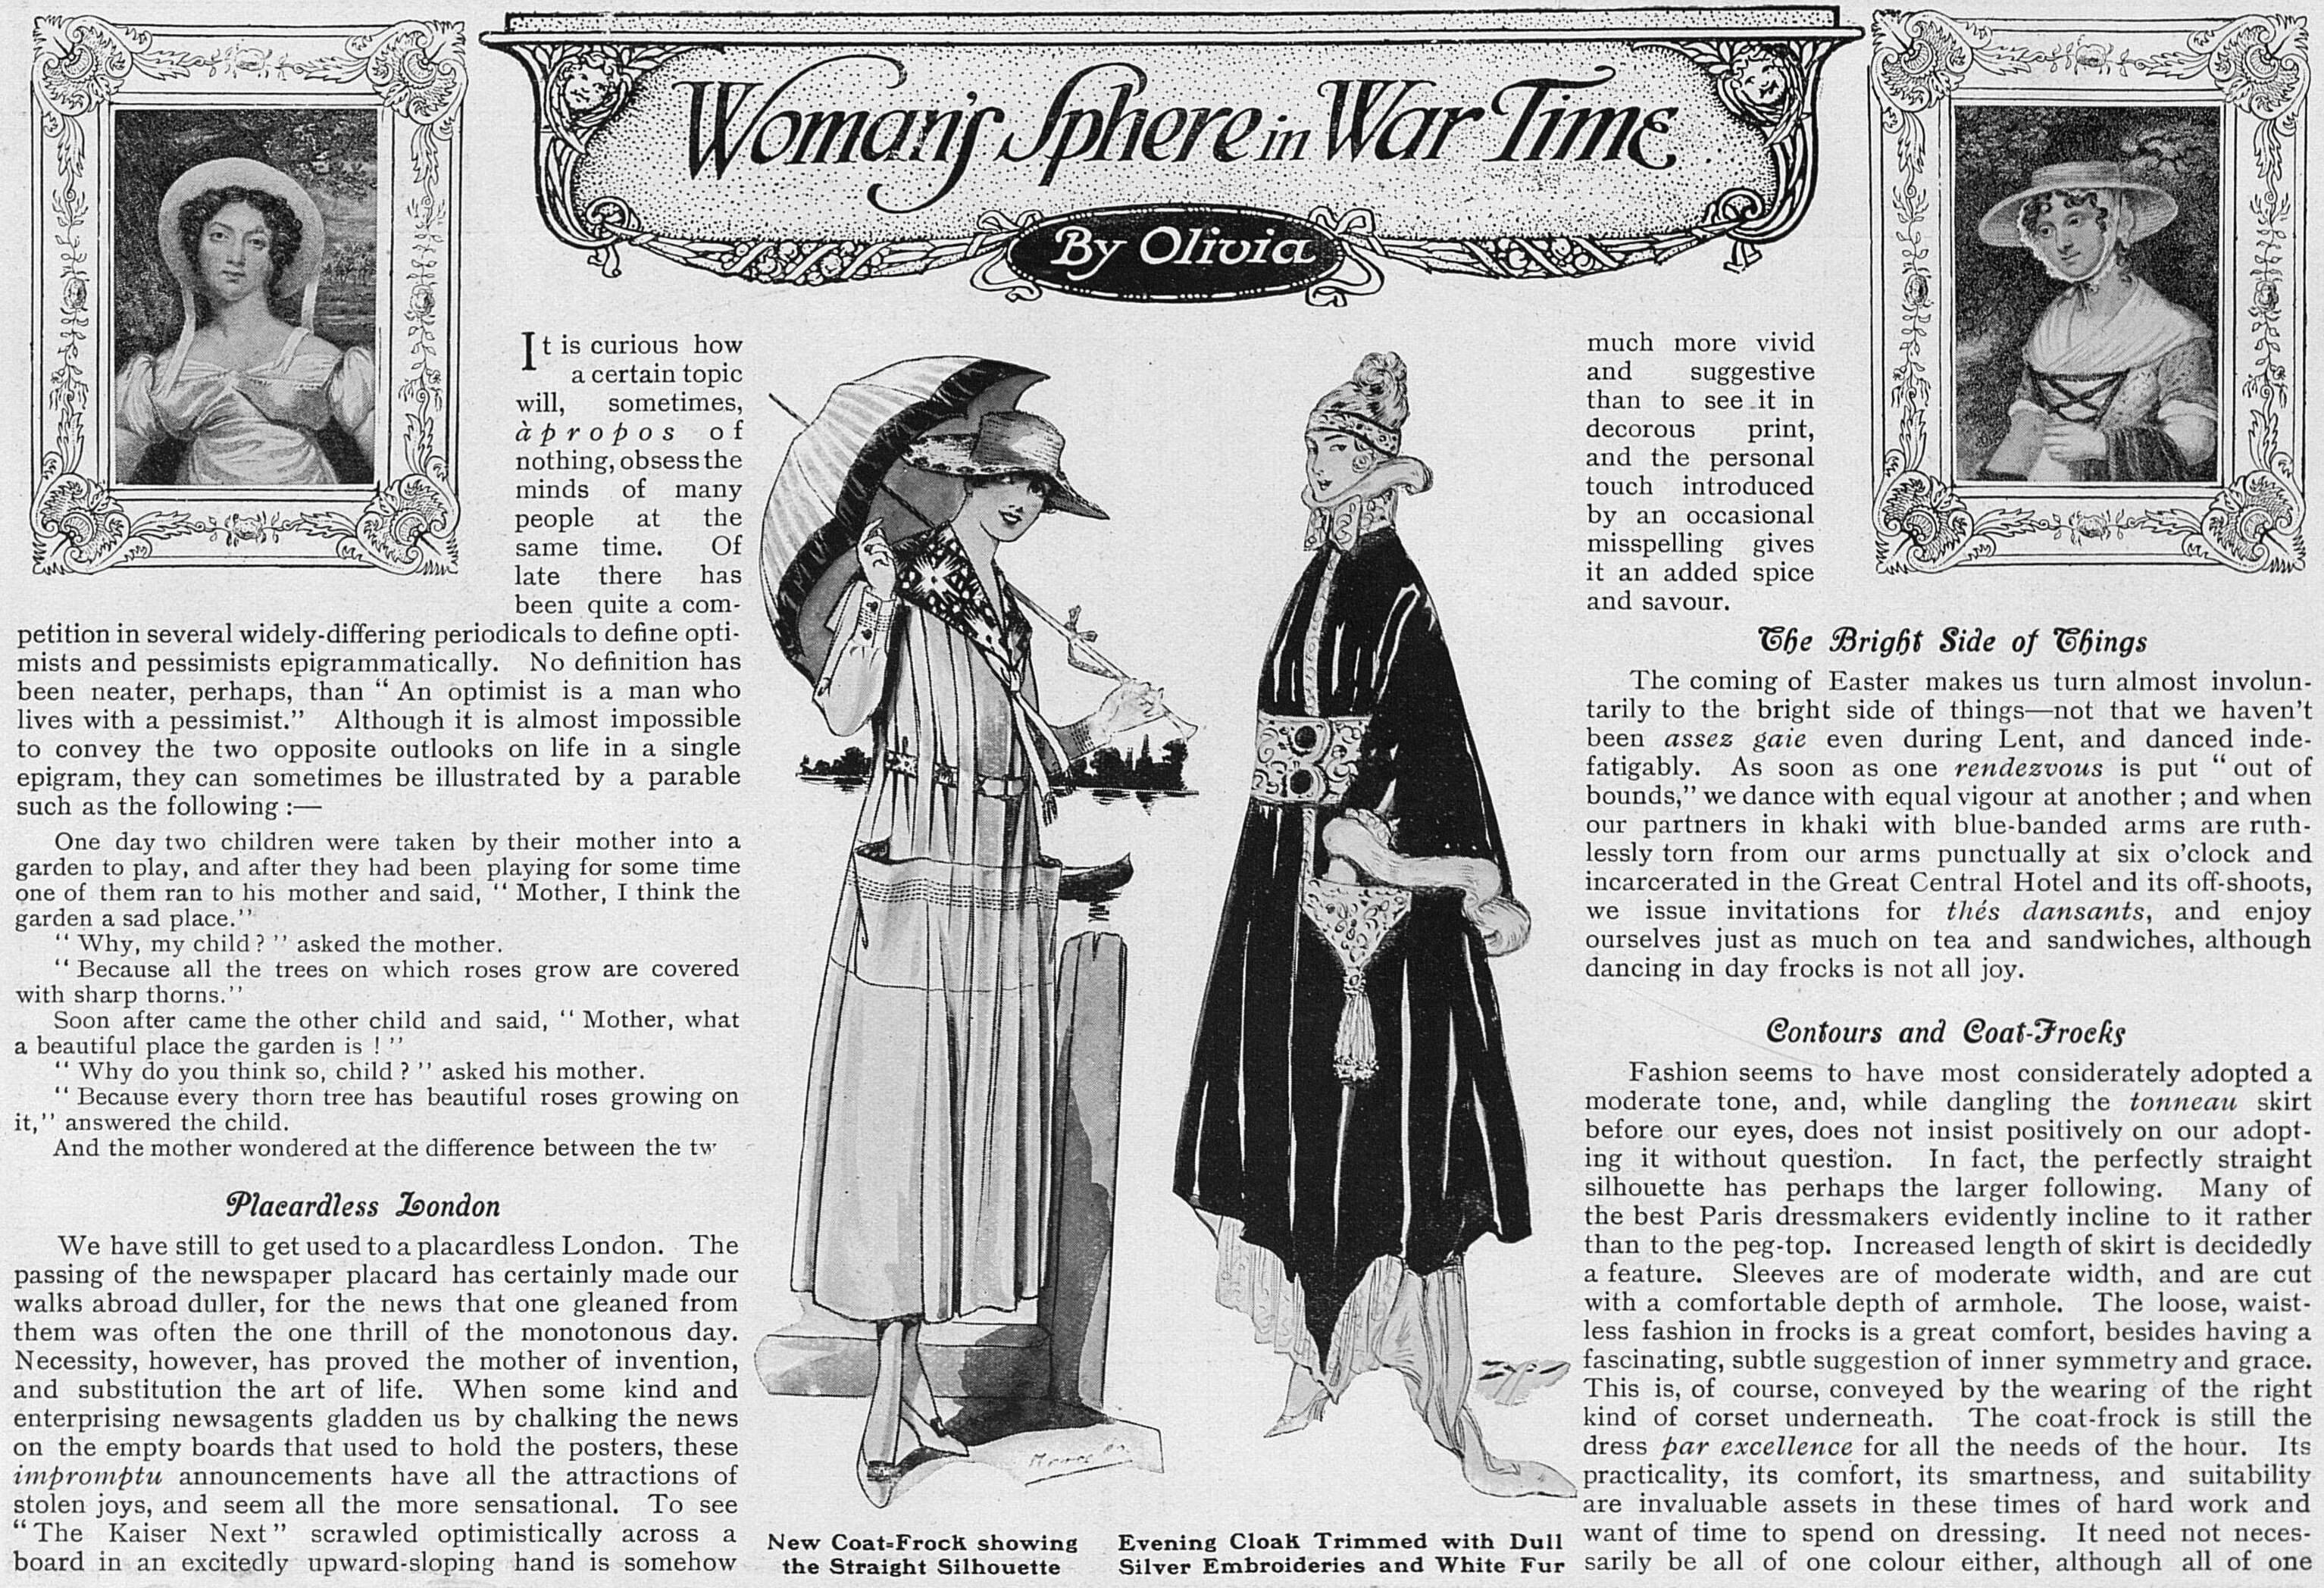 WomansSphereInWarTime_7Apr1917